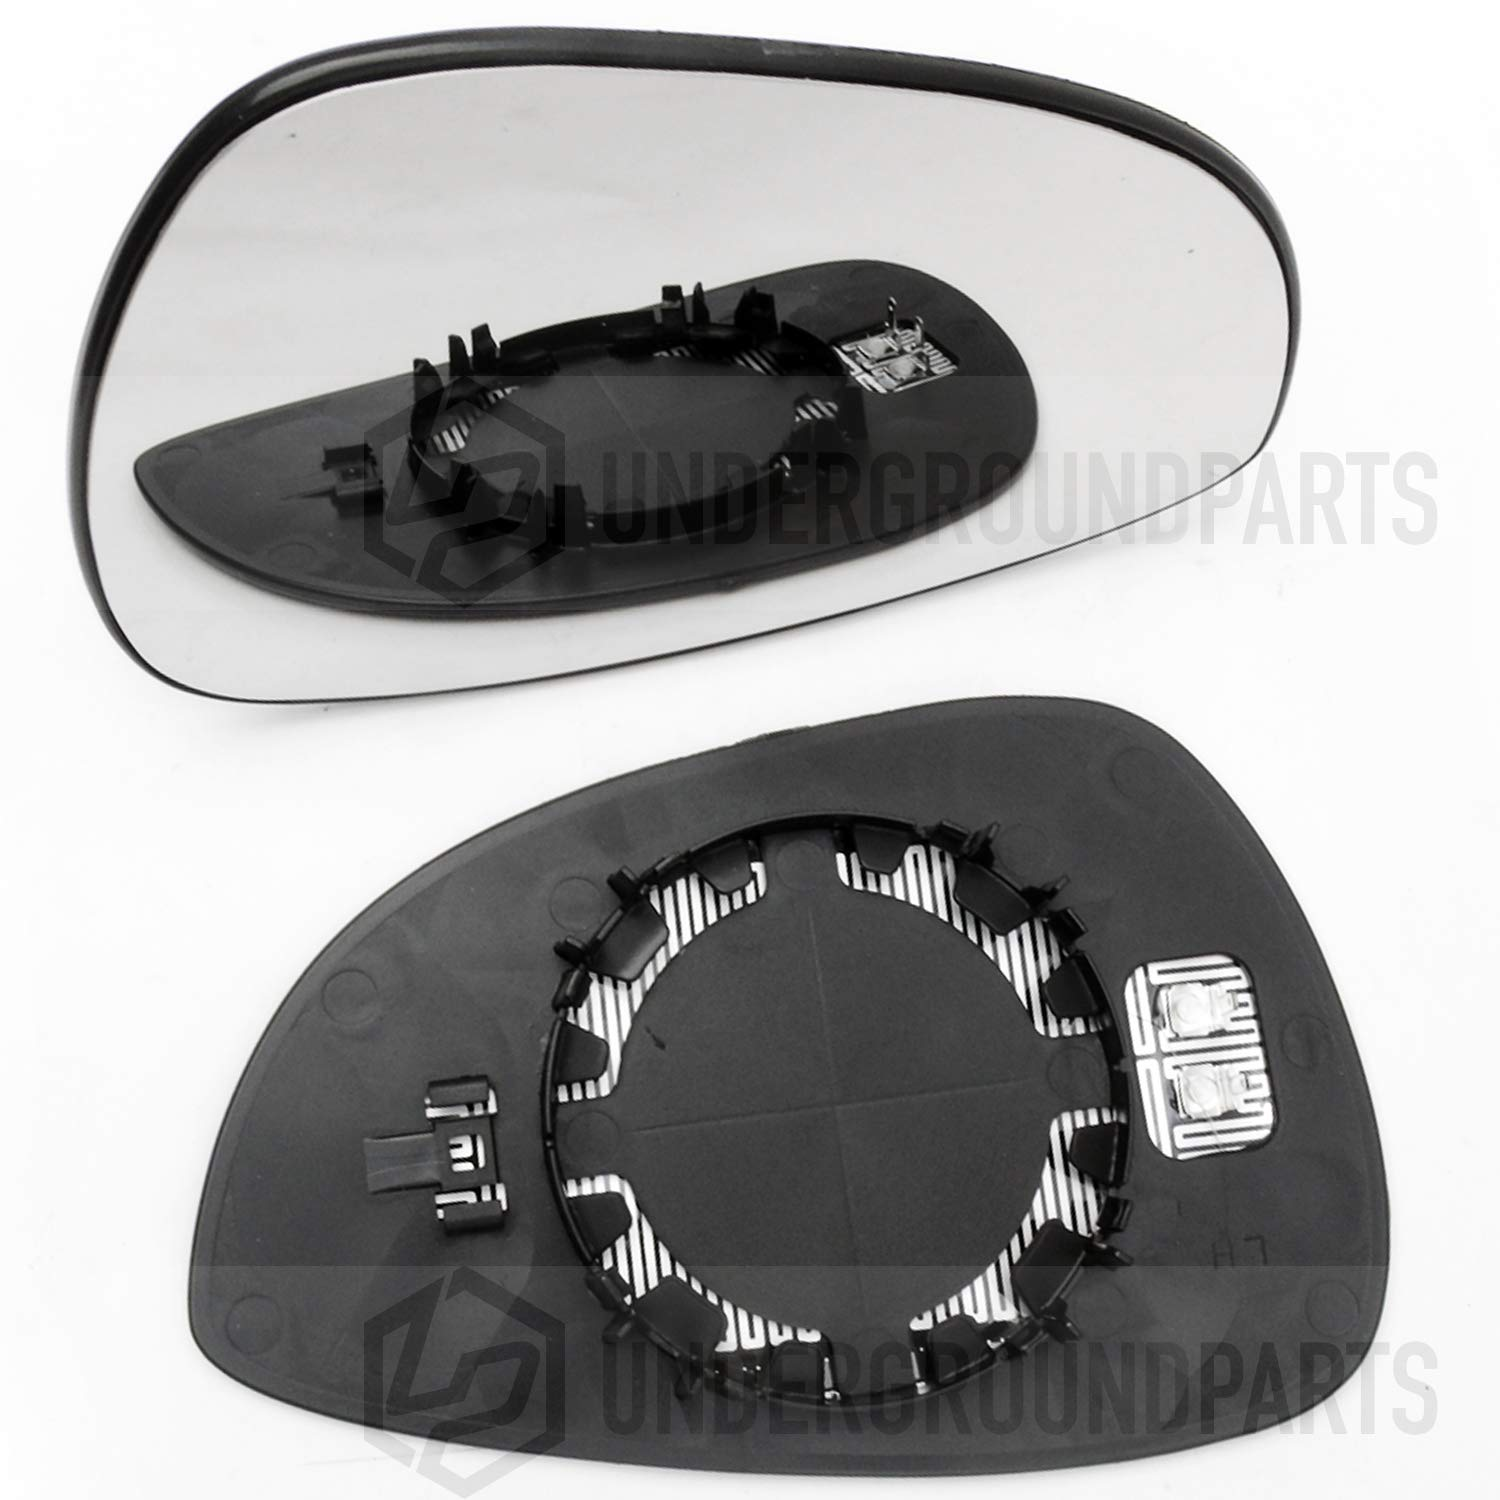 Underground Parts mk7 Replacement Door Wing Mirror Glass Heated Left Nearside Passenger Side